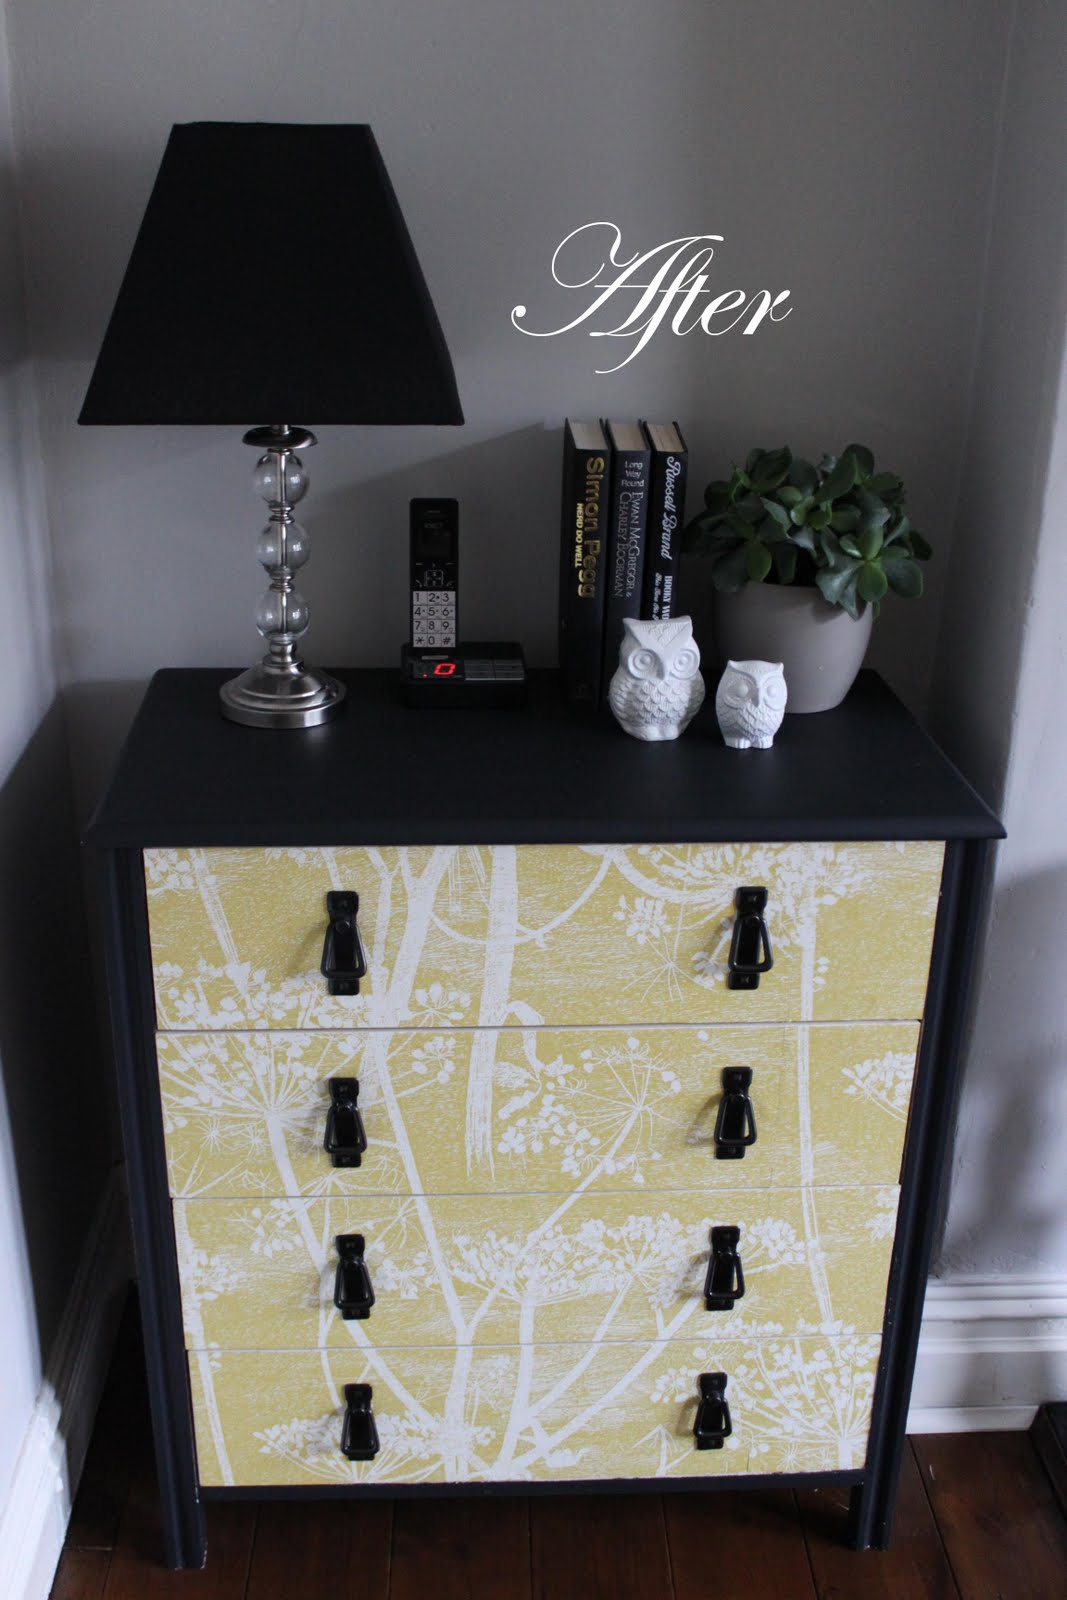 http://1.bp.blogspot.com/-8VnLlDXrt10/TmfEc9DvlYI/AAAAAAAACIs/T2Nj8oPeuHo/s1600/Wallpapered+chest+of+drawers+after.jpg